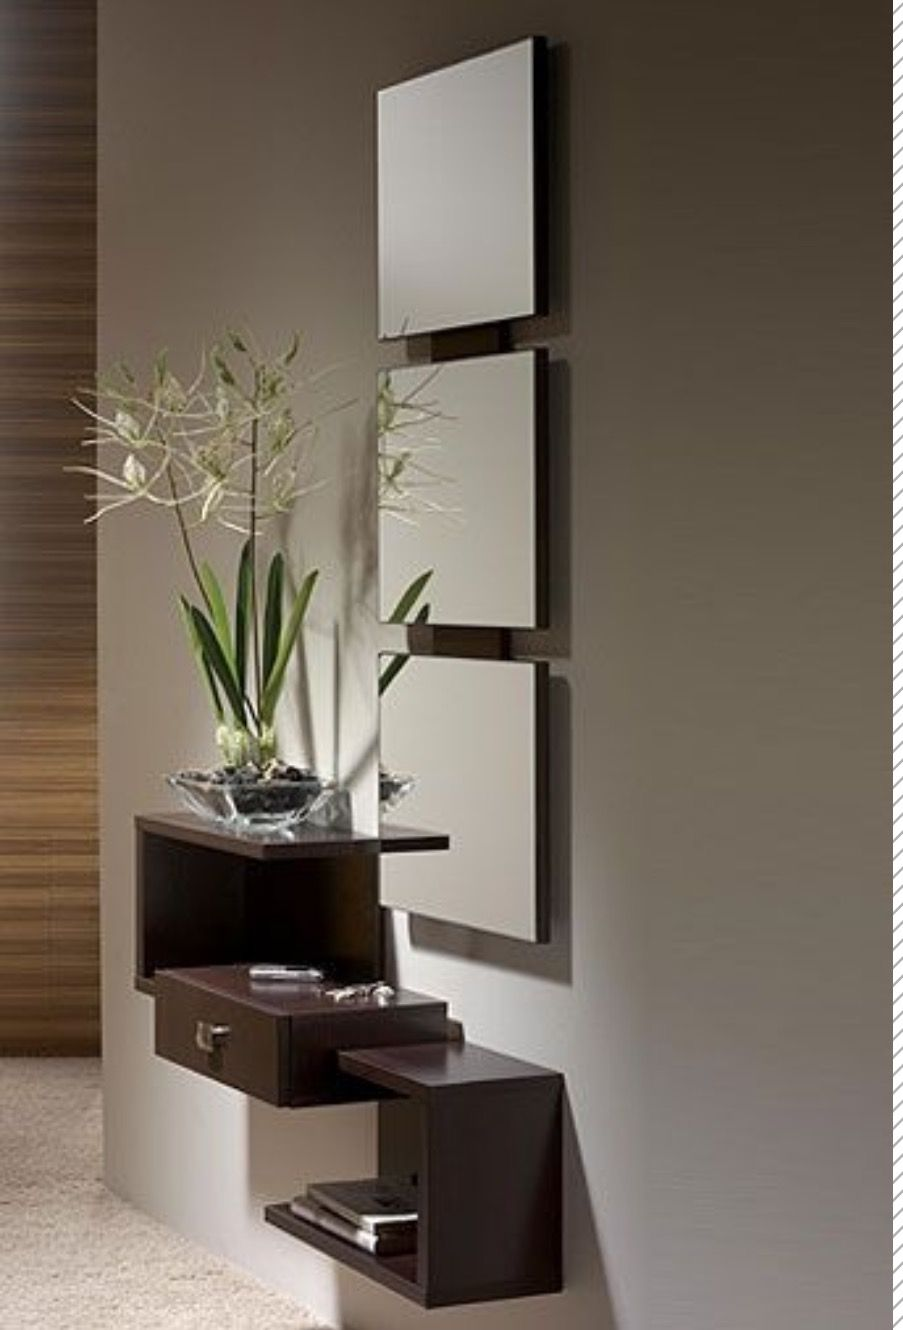 Shelves White Walls And Entry Ways: Arredamento Ingresso Moderno, Arredamento Entrata Casa E Arredamento